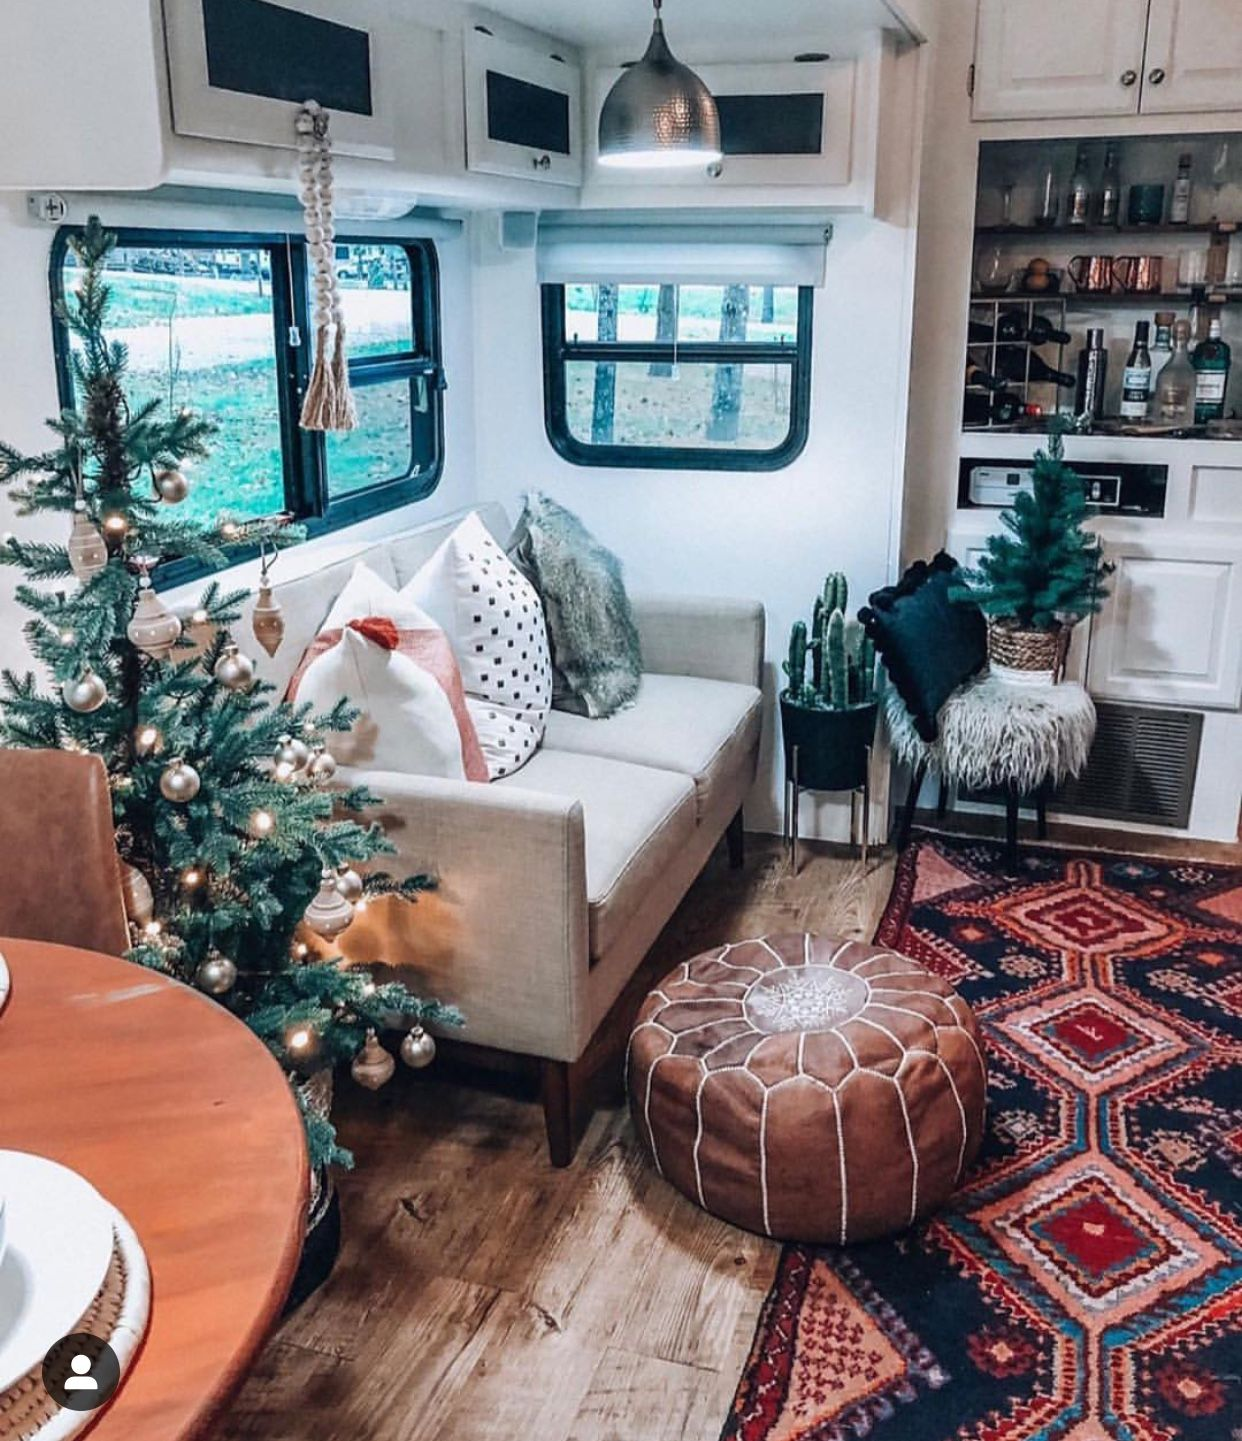 Country Pines Christmas Tree Farms: Home Deco On Camper Renovation